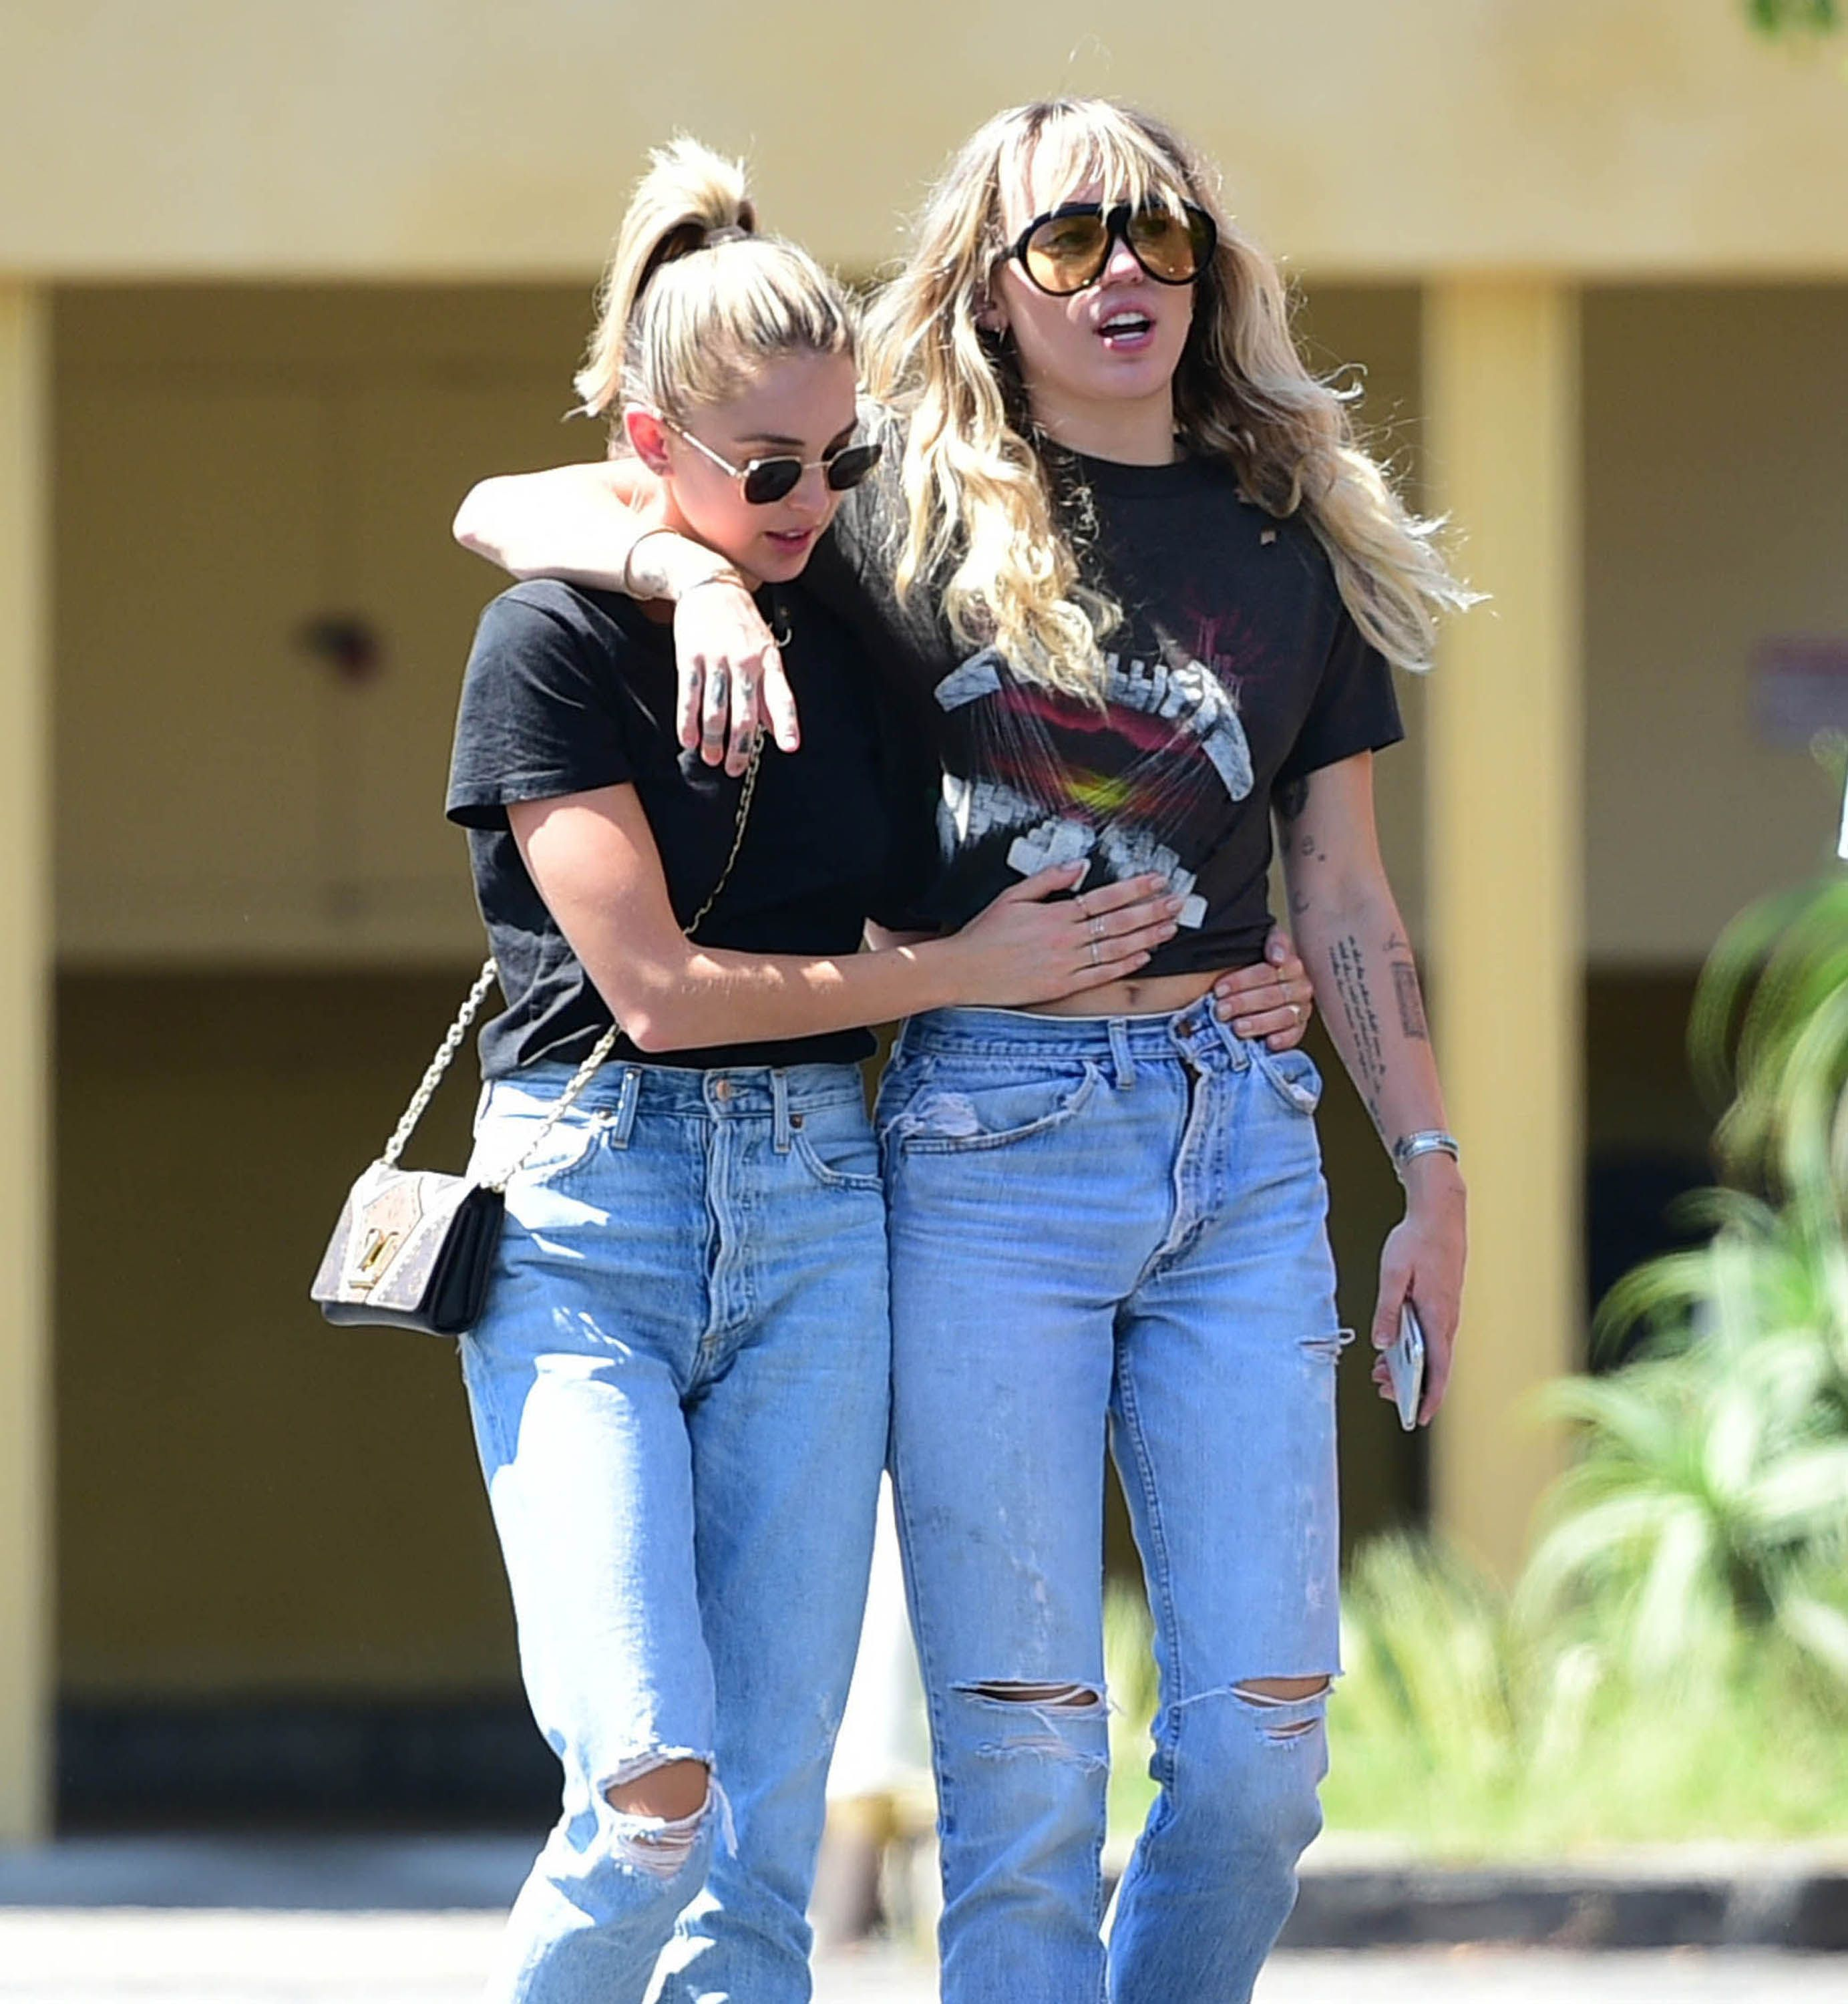 Miley Cyrus and Kaitlynn Carter Wear Matching Outfits Again During a Date in LA